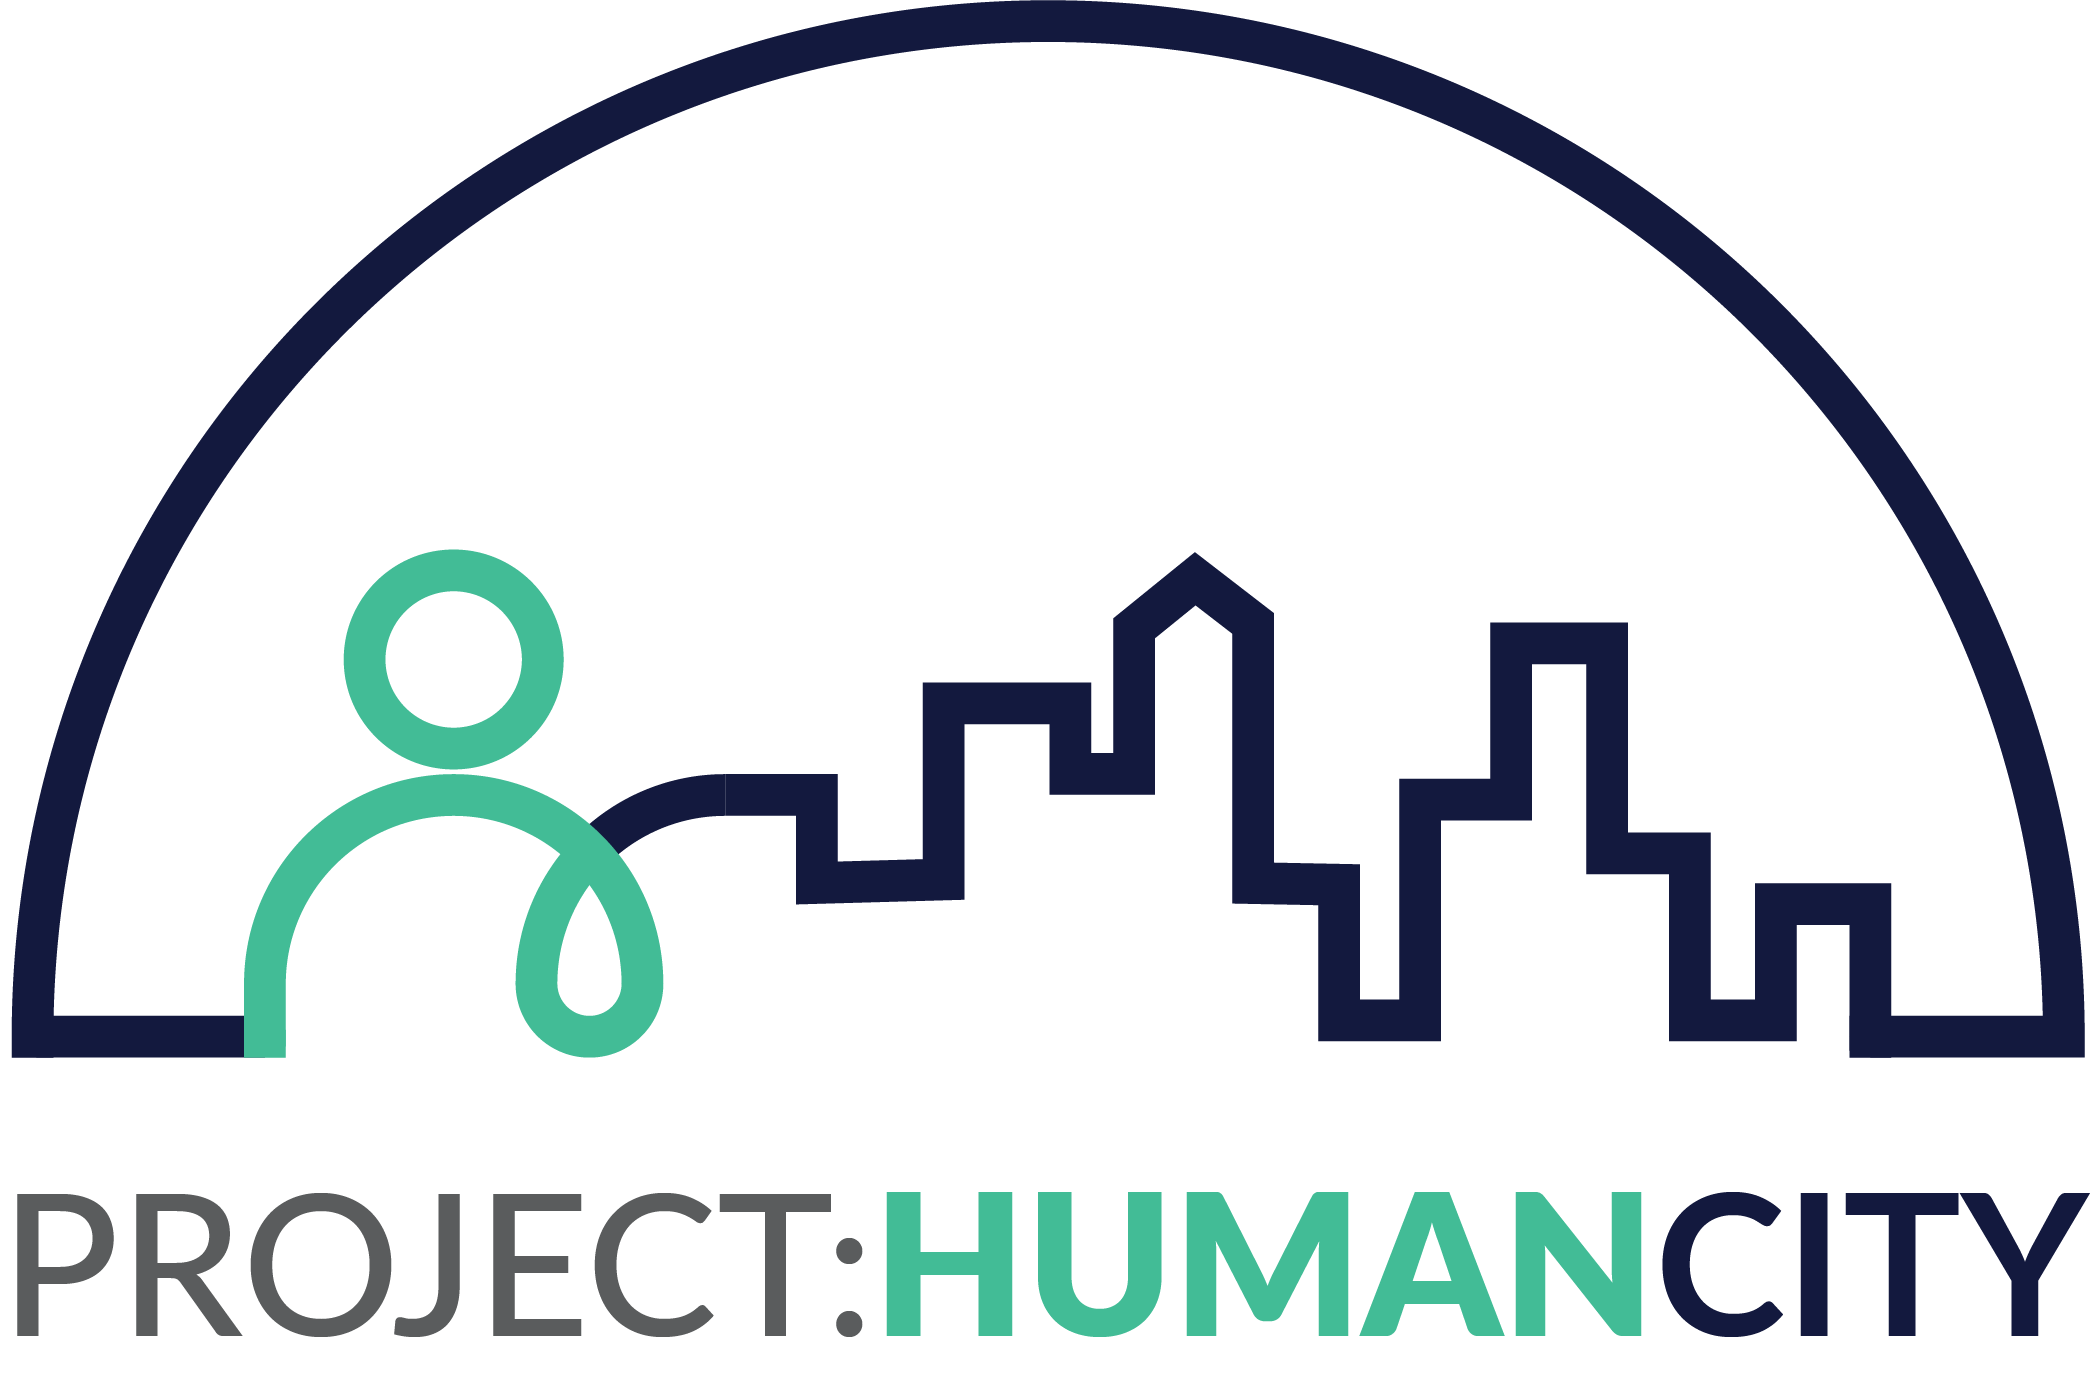 Project: Human City